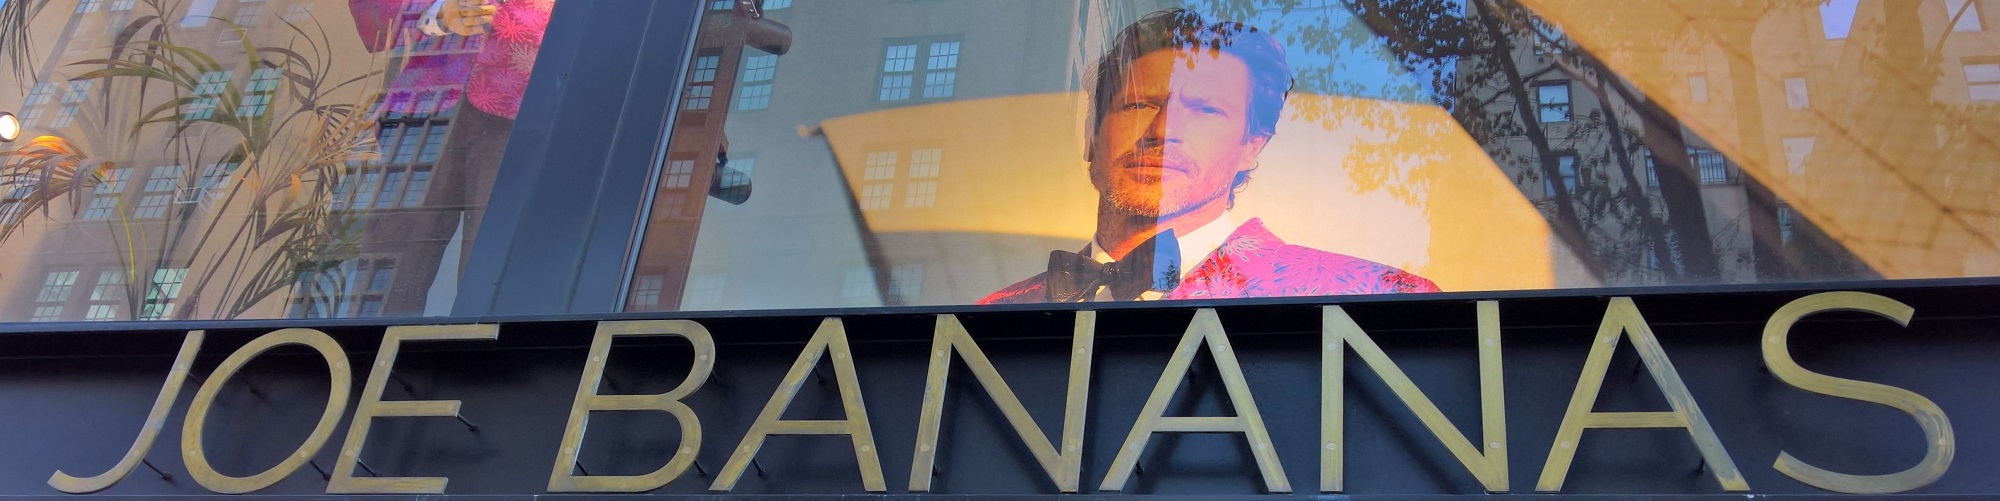 Aussie Businesses in NYC – and where to find them: Joe Bananas